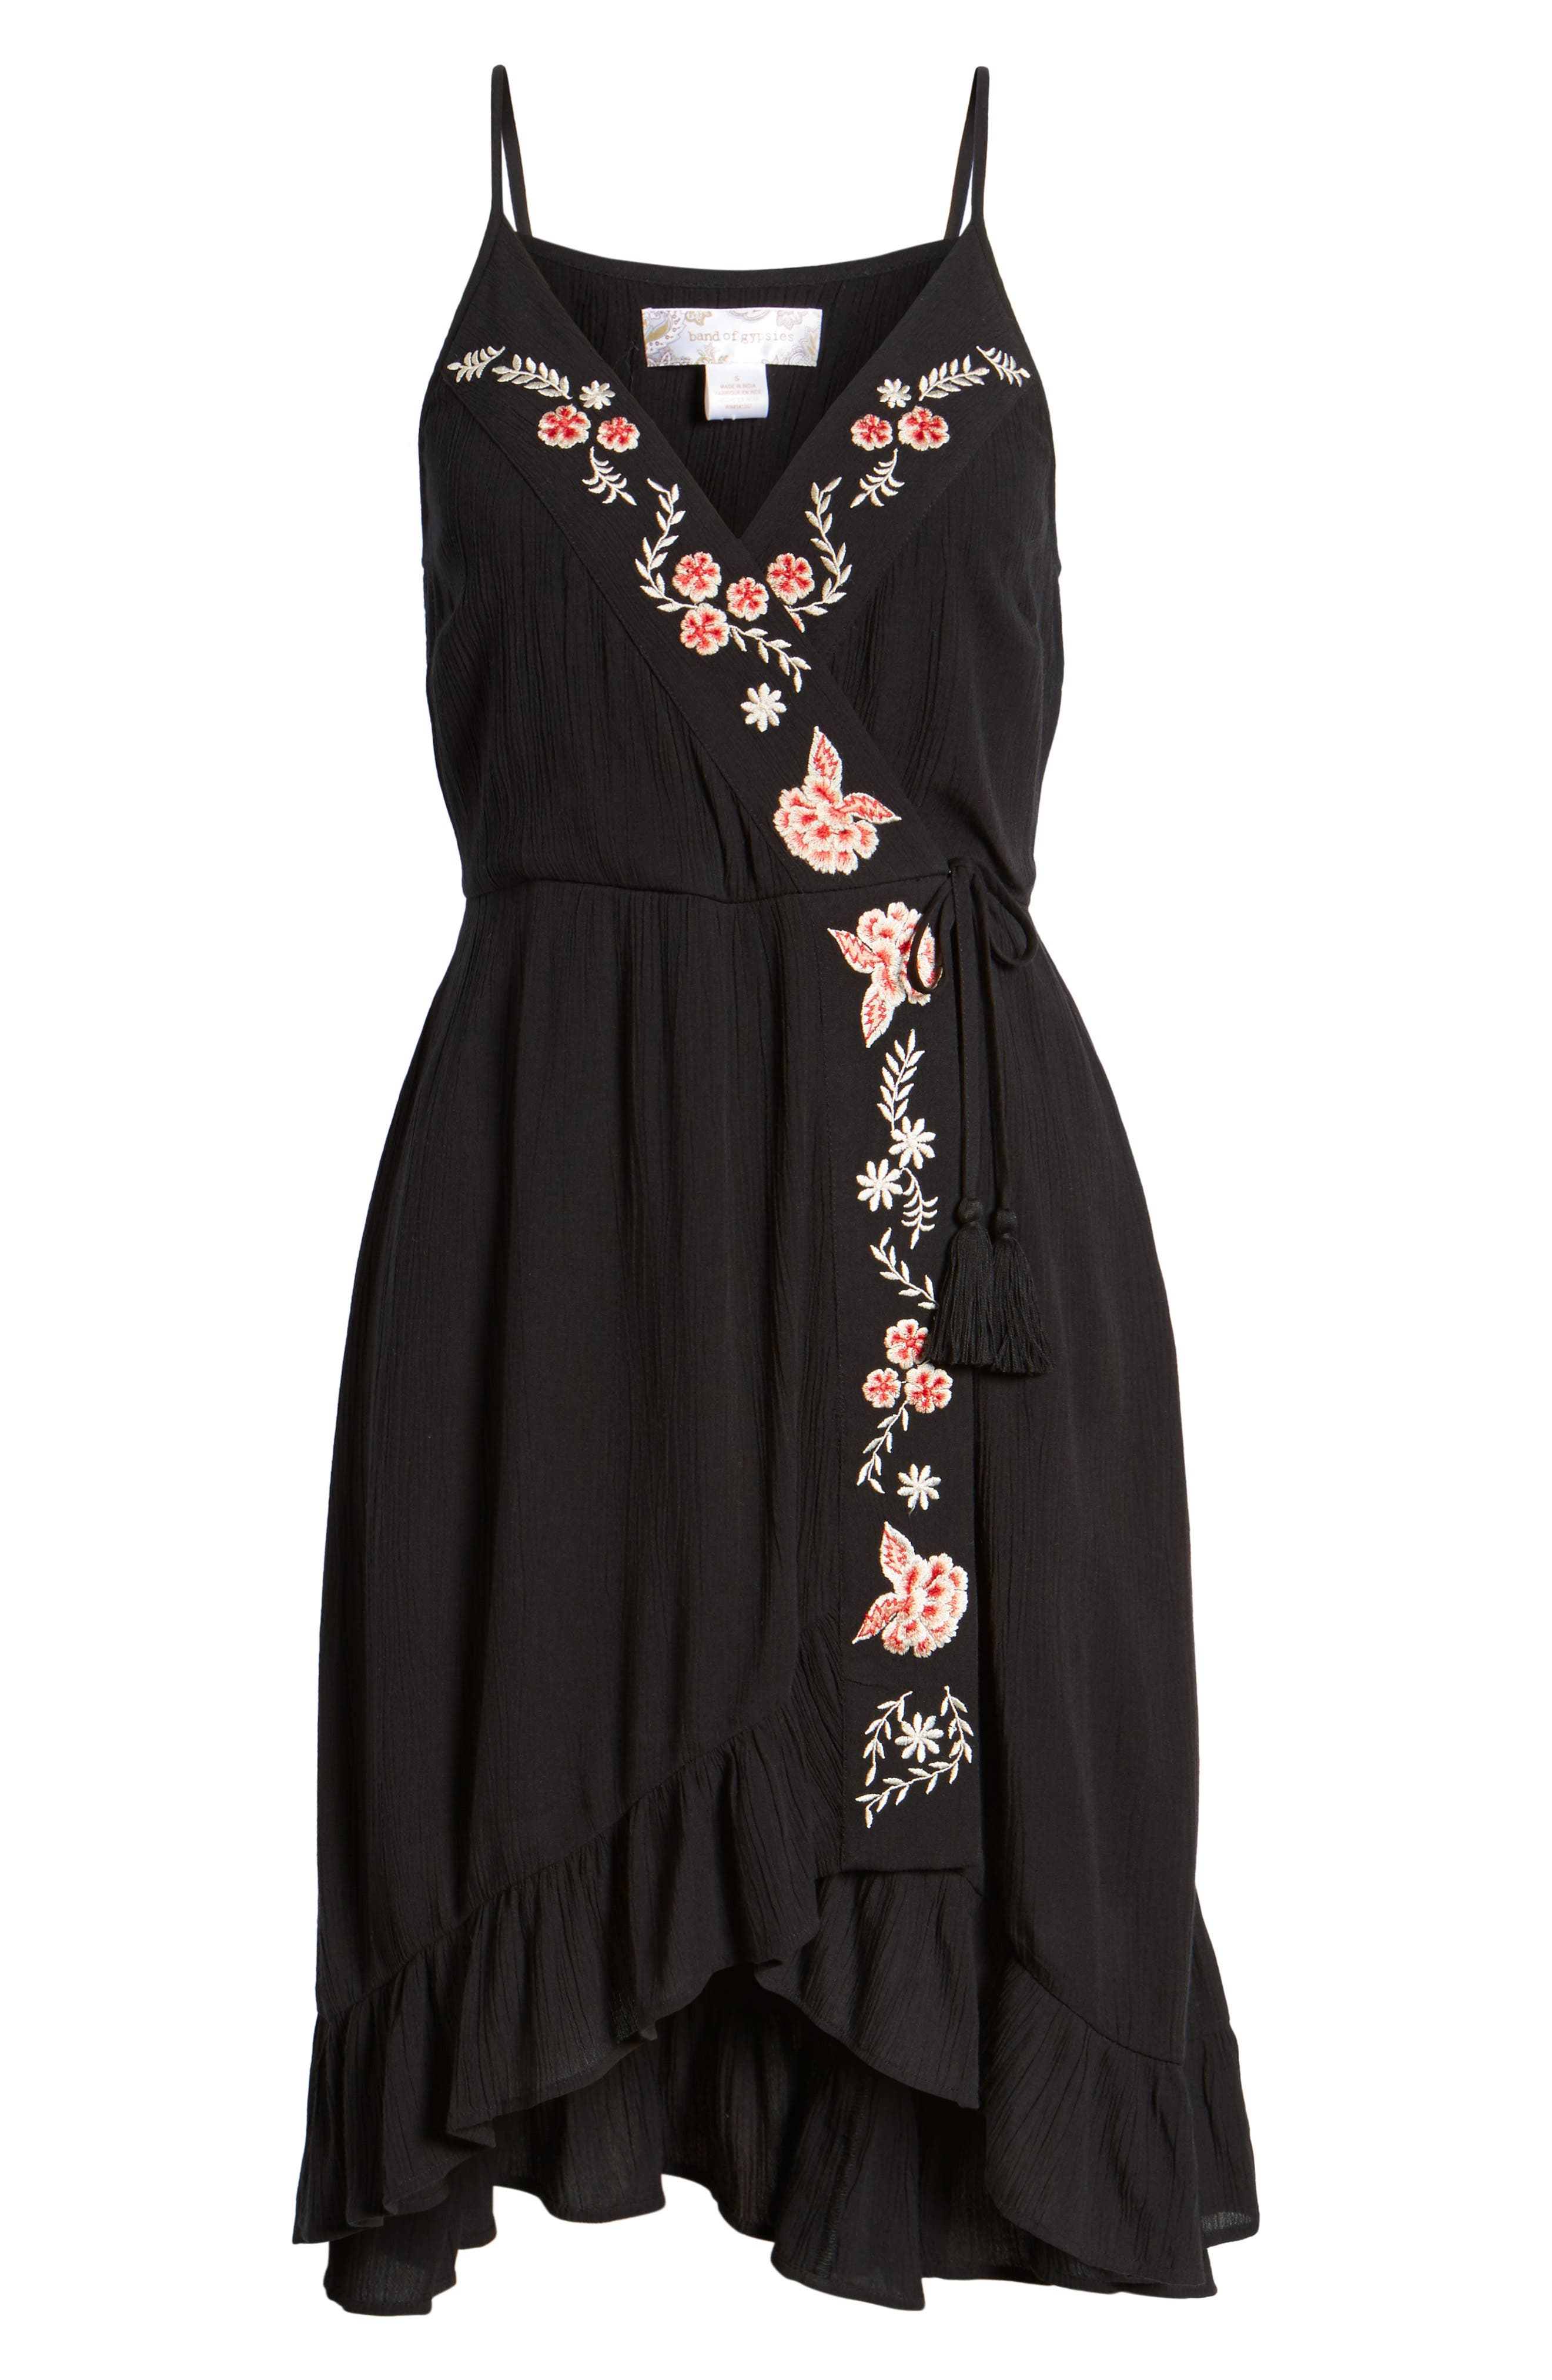 Floral Embroidered Faux Wrap Dress,                             Alternate thumbnail 6, color,                             Black/ Red